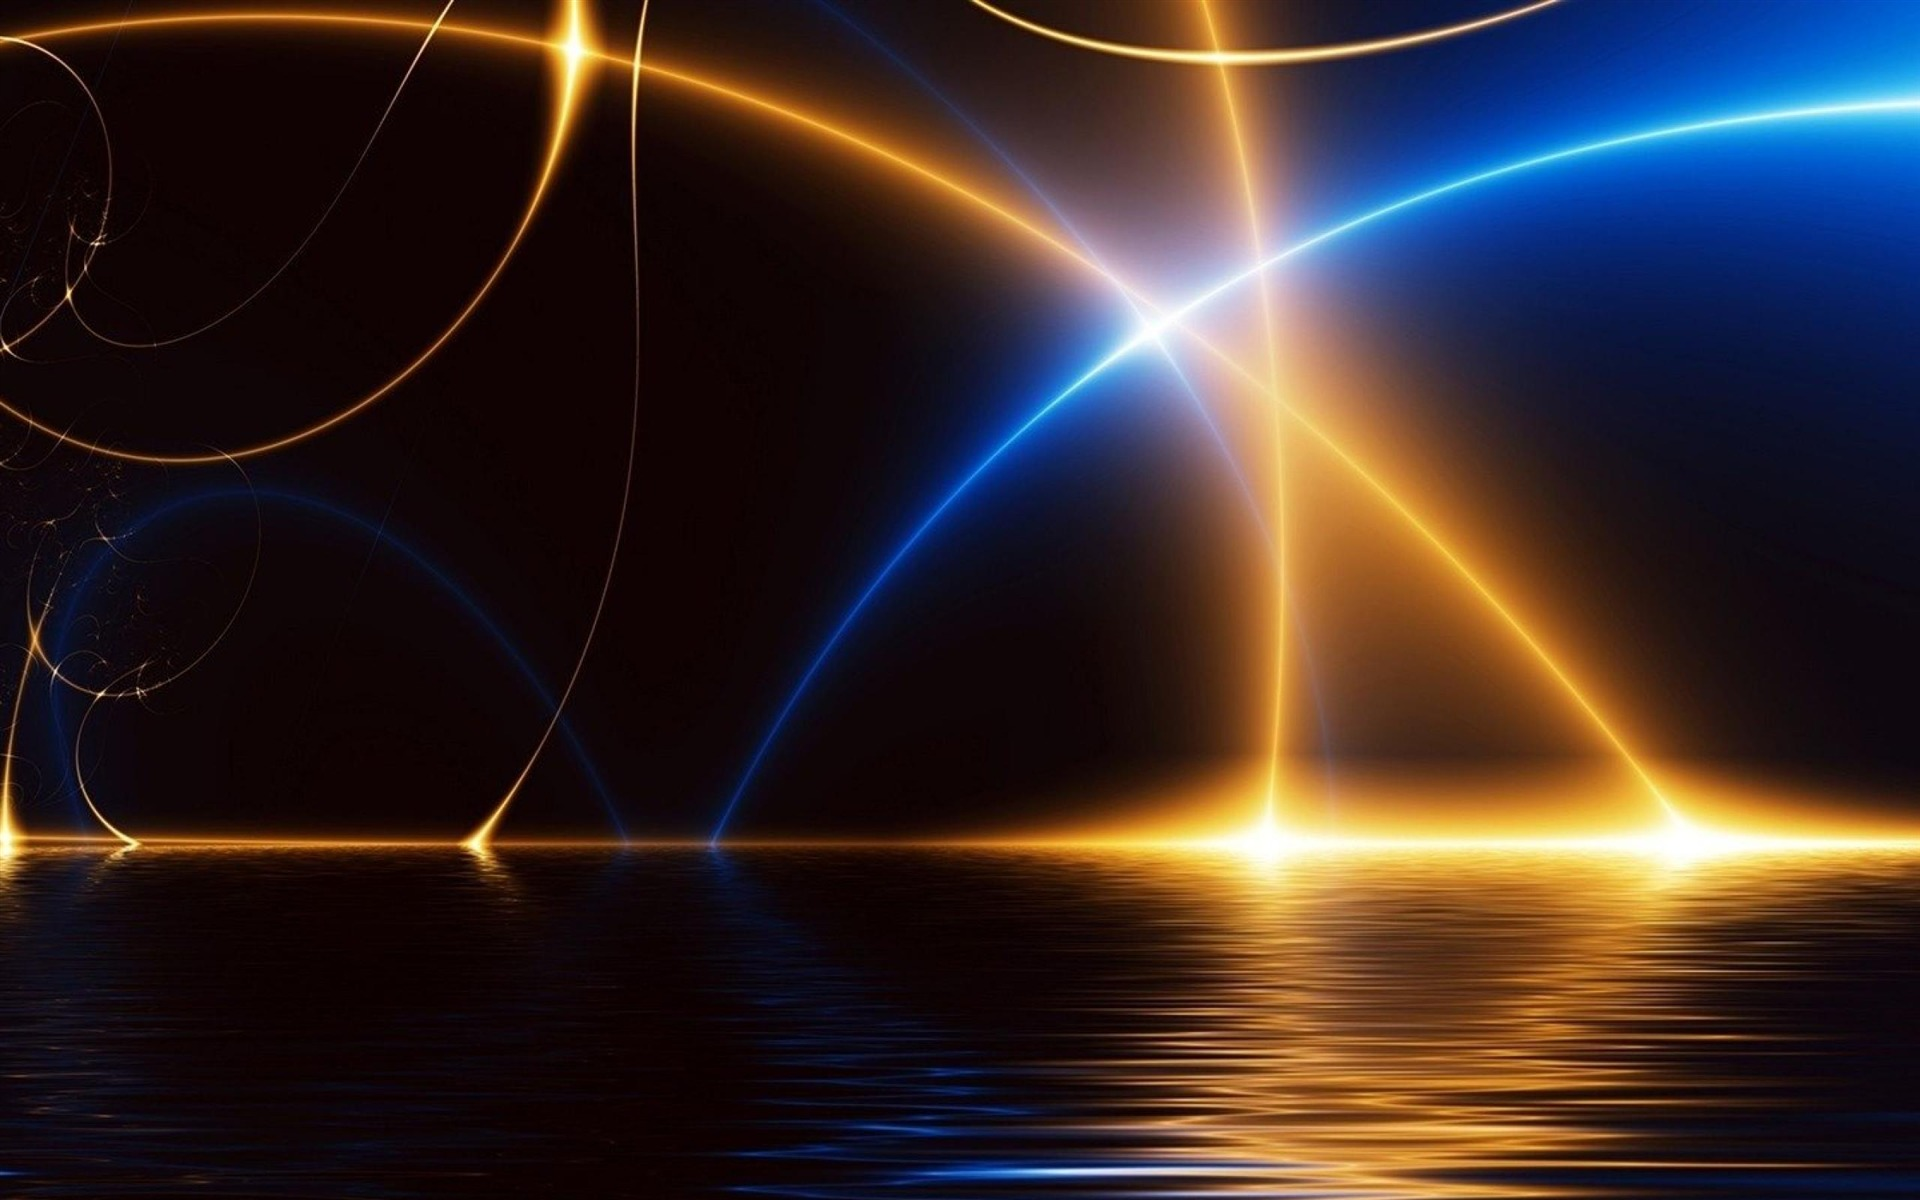 light backgroundabstract design wallpaper Preview